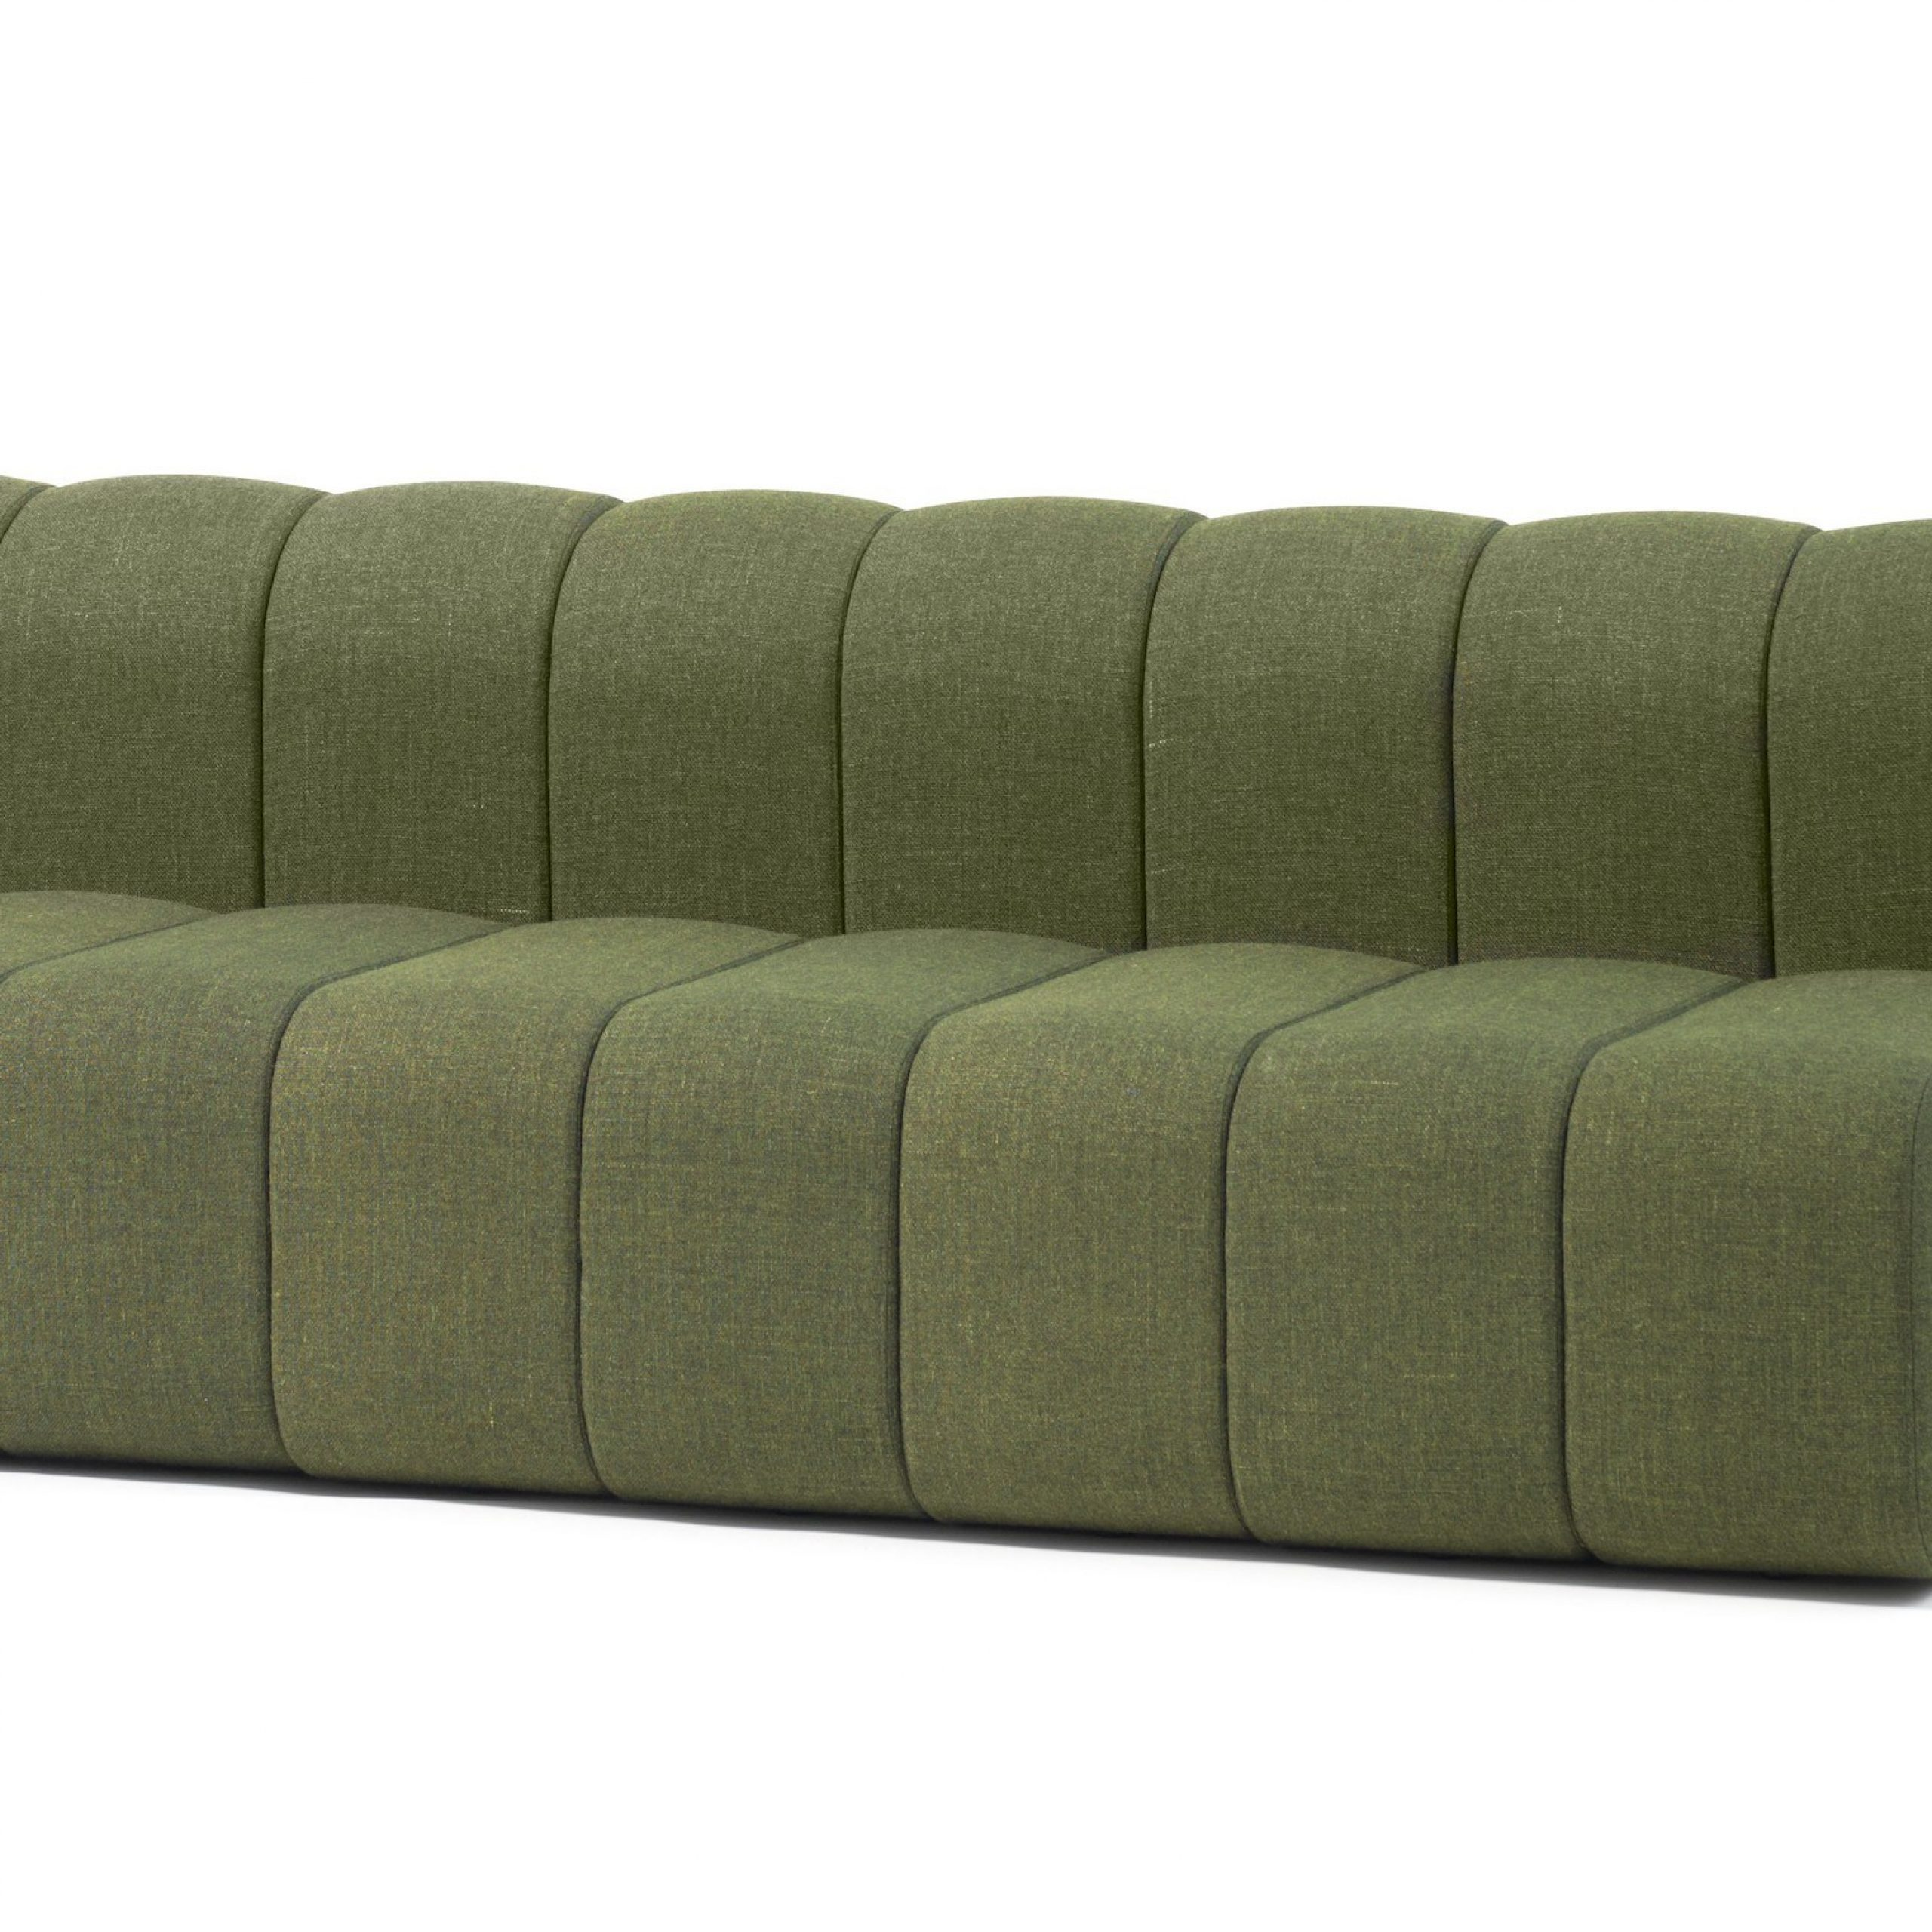 Best And Newest 2pc Maddox Right Arm Facing Sectional Sofas With Cuddler Brown For My Bobs Sectional Sofa (View 4 of 17)